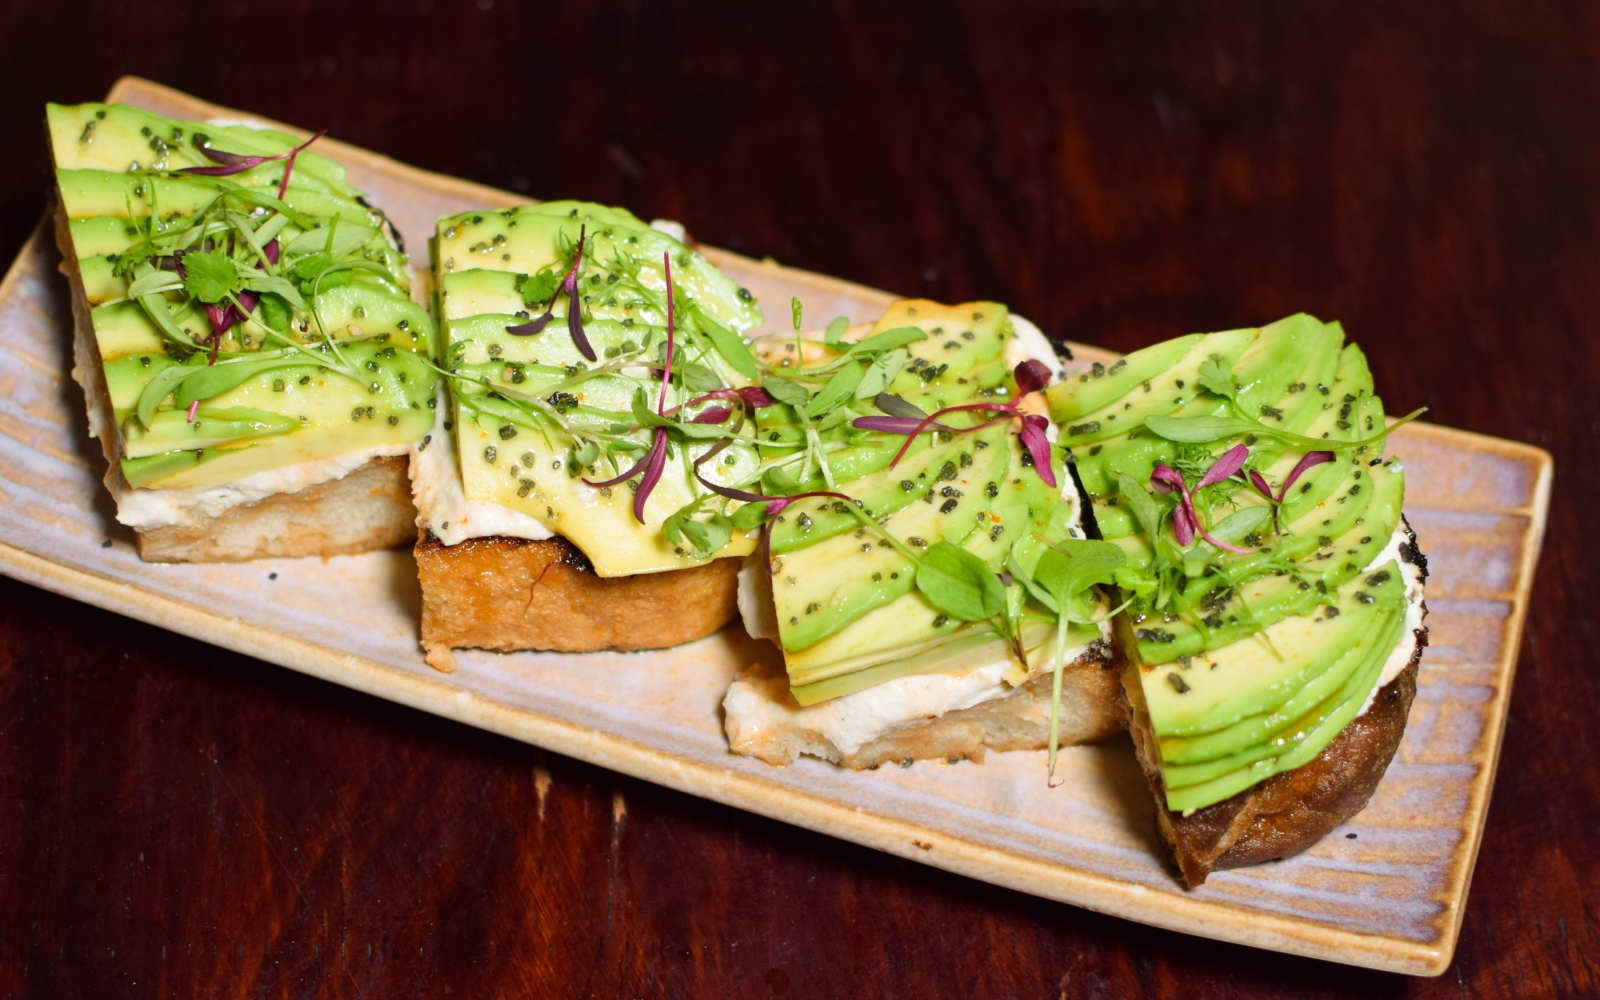 Vegan Mother of Pearl Restaurant's Avocado and Ricotta Toast